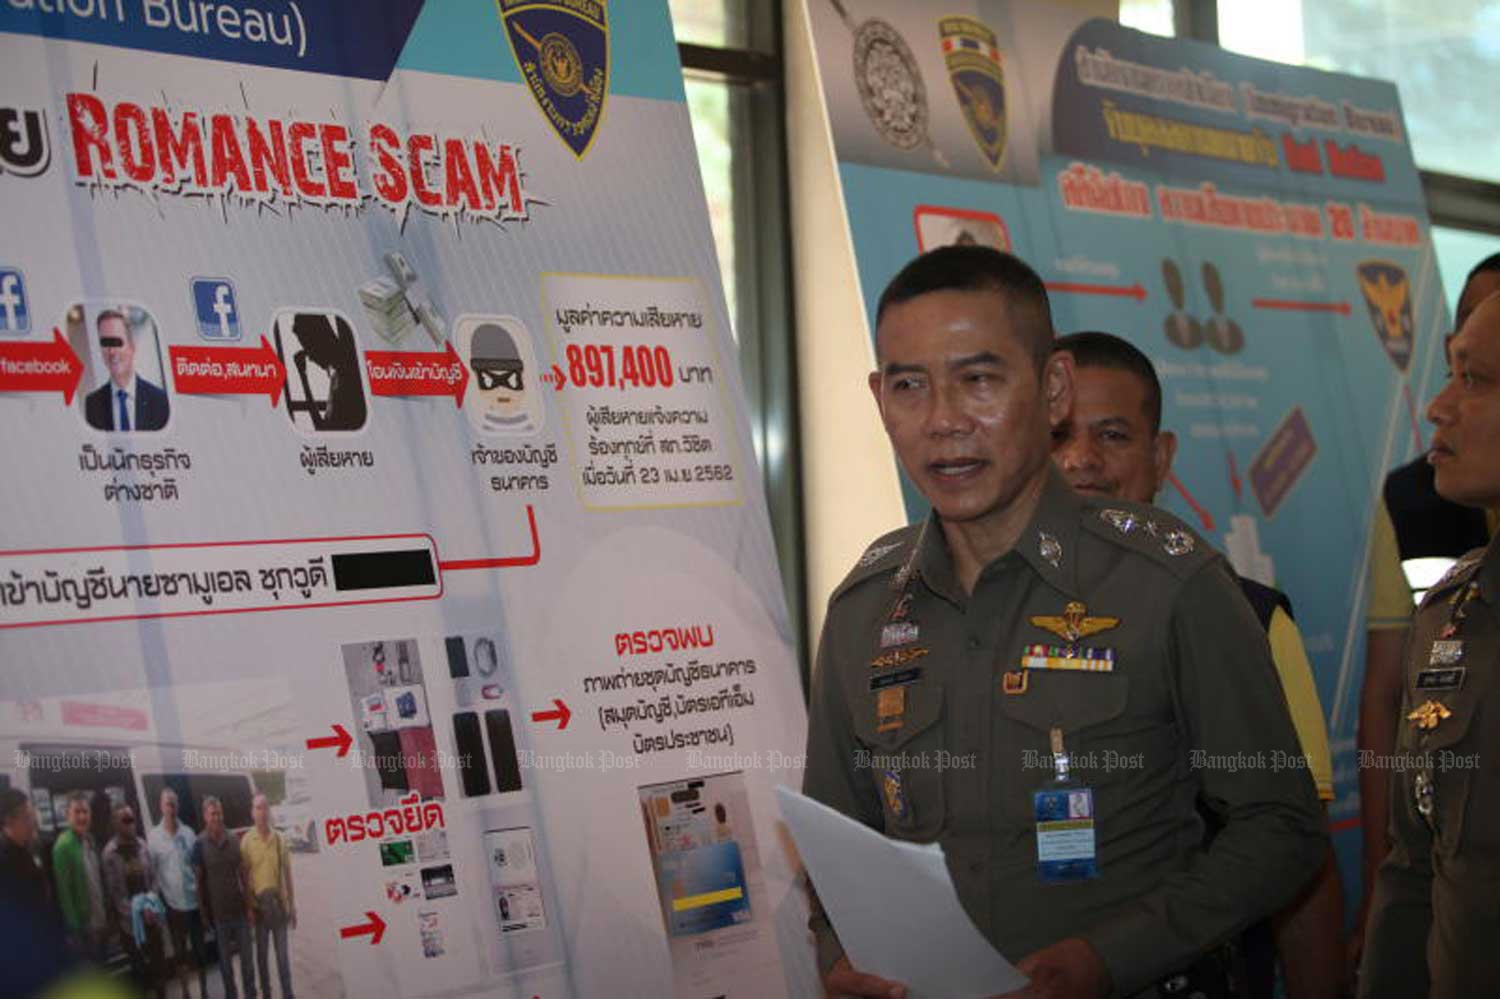 Pol Lt Gen Sompong Chingduang, acting Immigration Bureau commissioner, on Thursday explains the charts detailing fraud allegedly committed by a Korean man and a romance scam perpetrated by a Nigerian. (Photo by Apichart Jinakul)